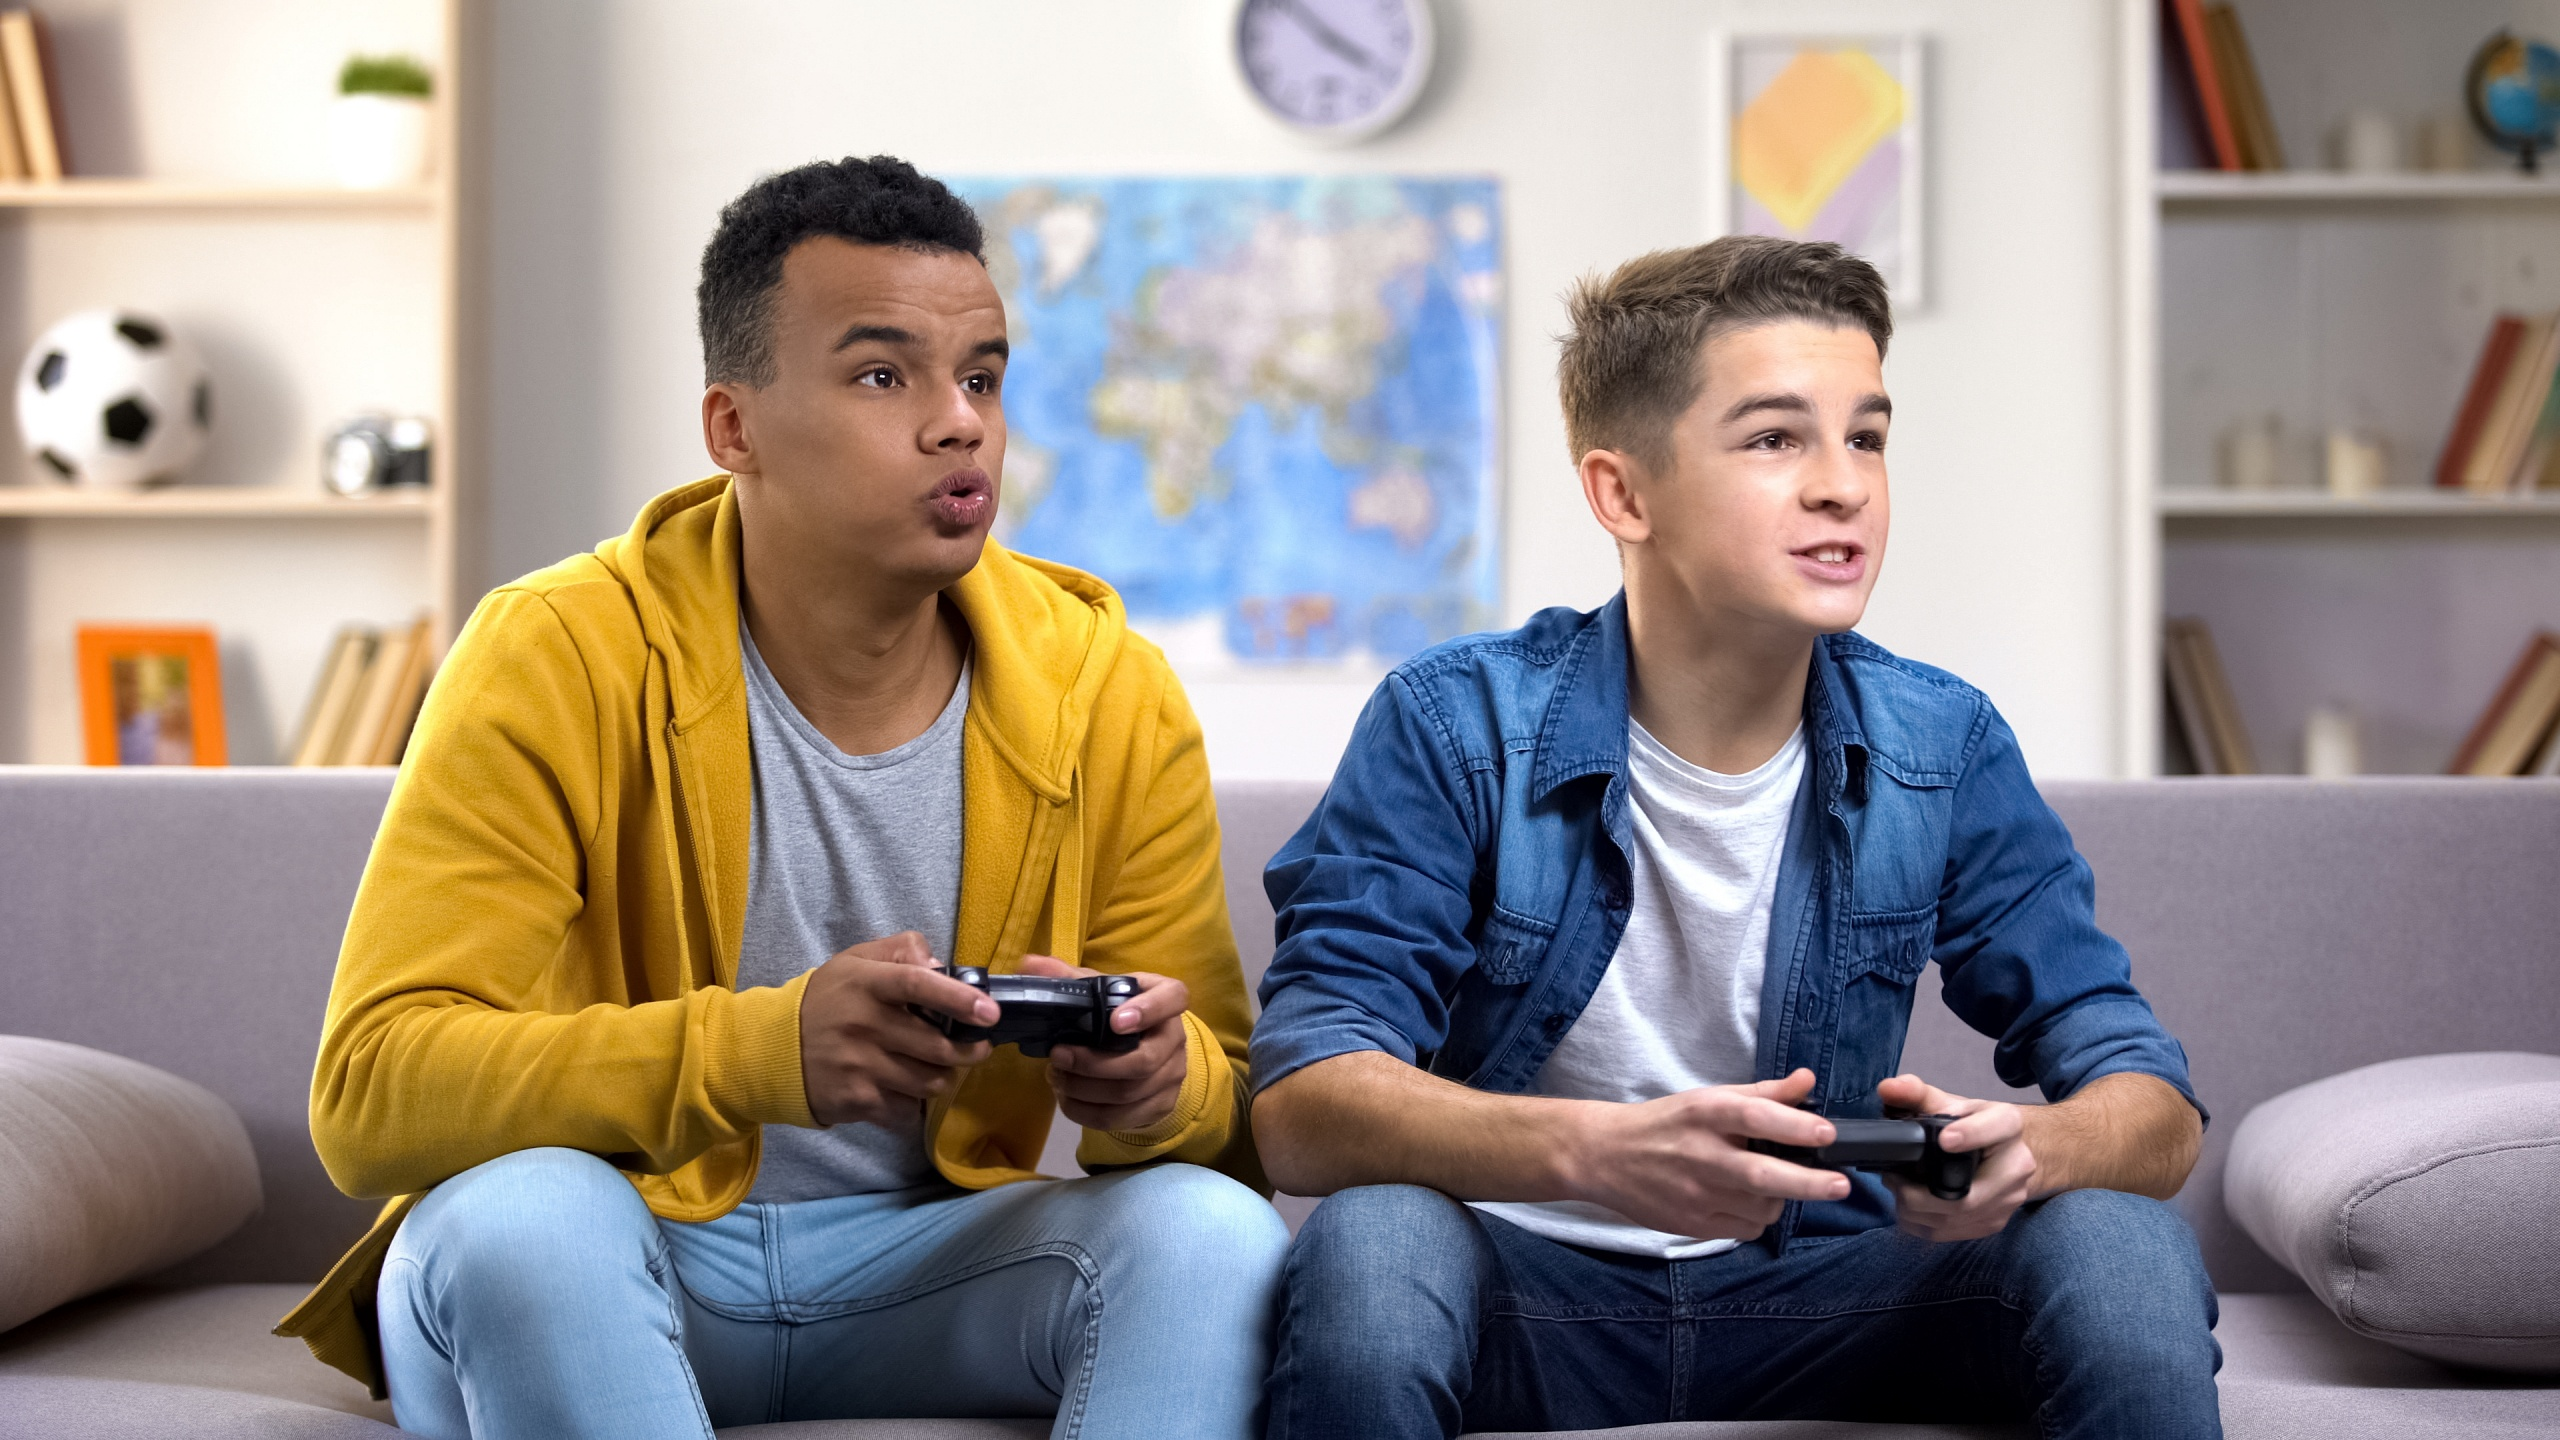 Excited multiethnic teen friends enjoying video games, free time at home